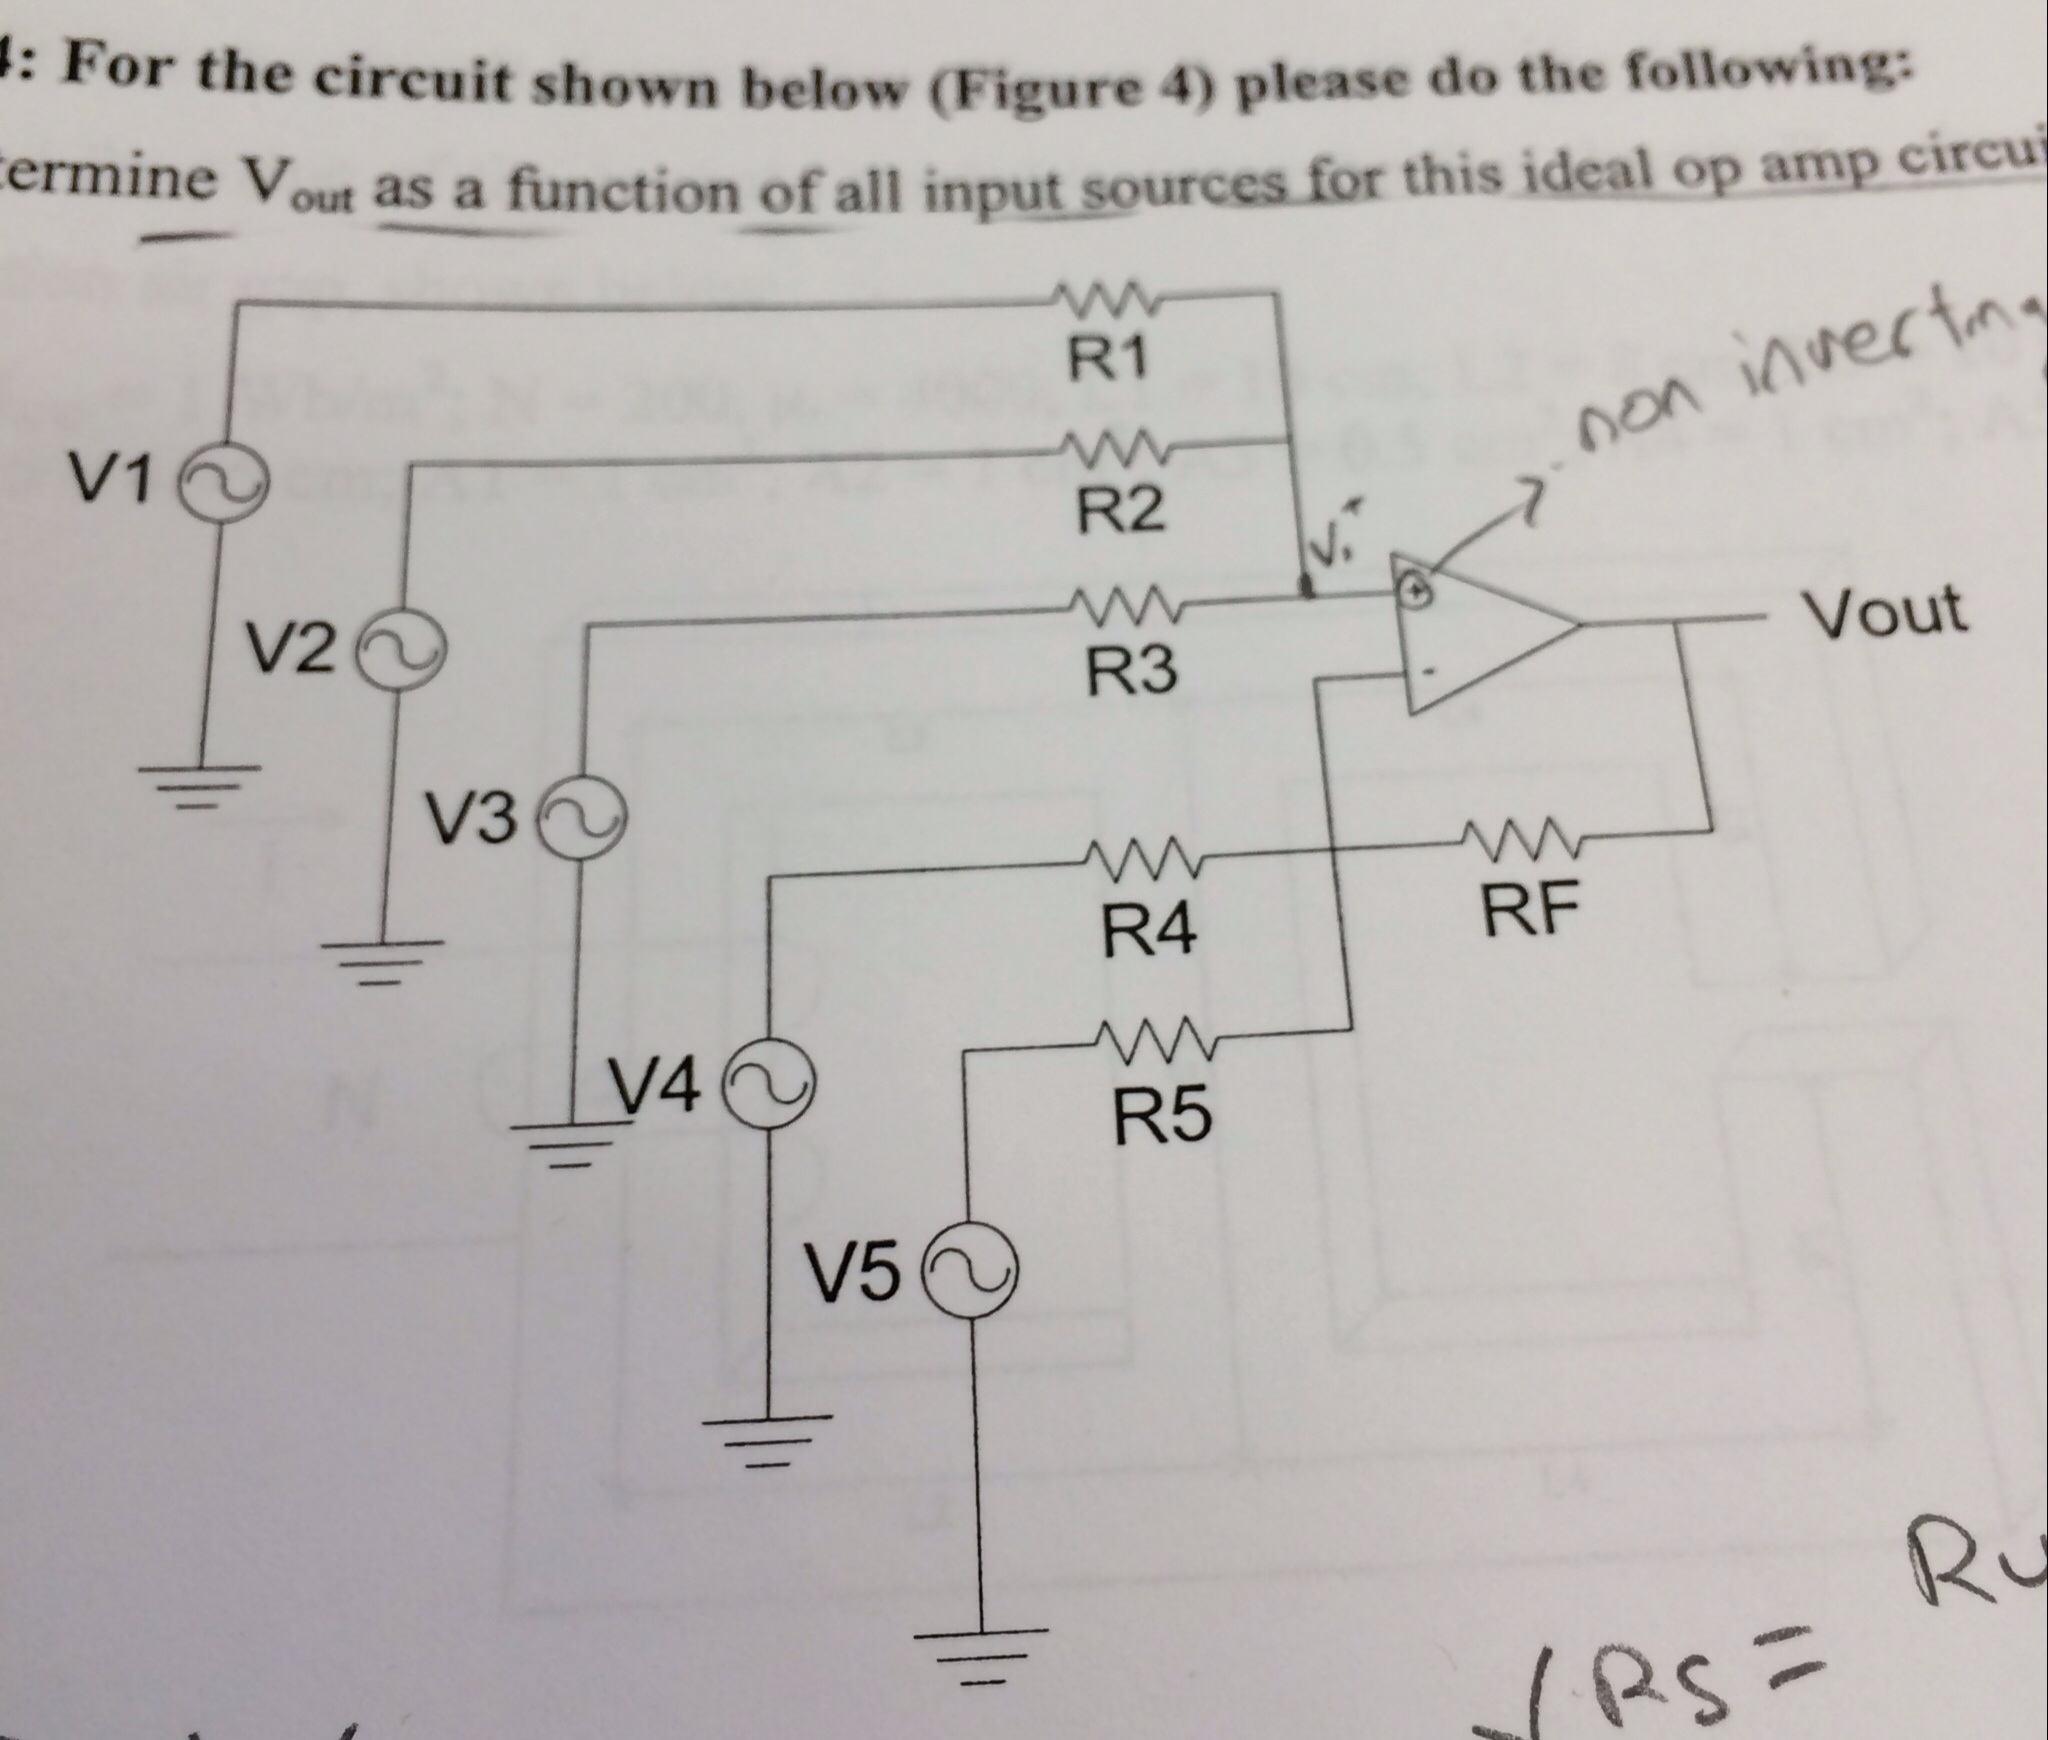 For the circuit shown below (Figure 4) please do t